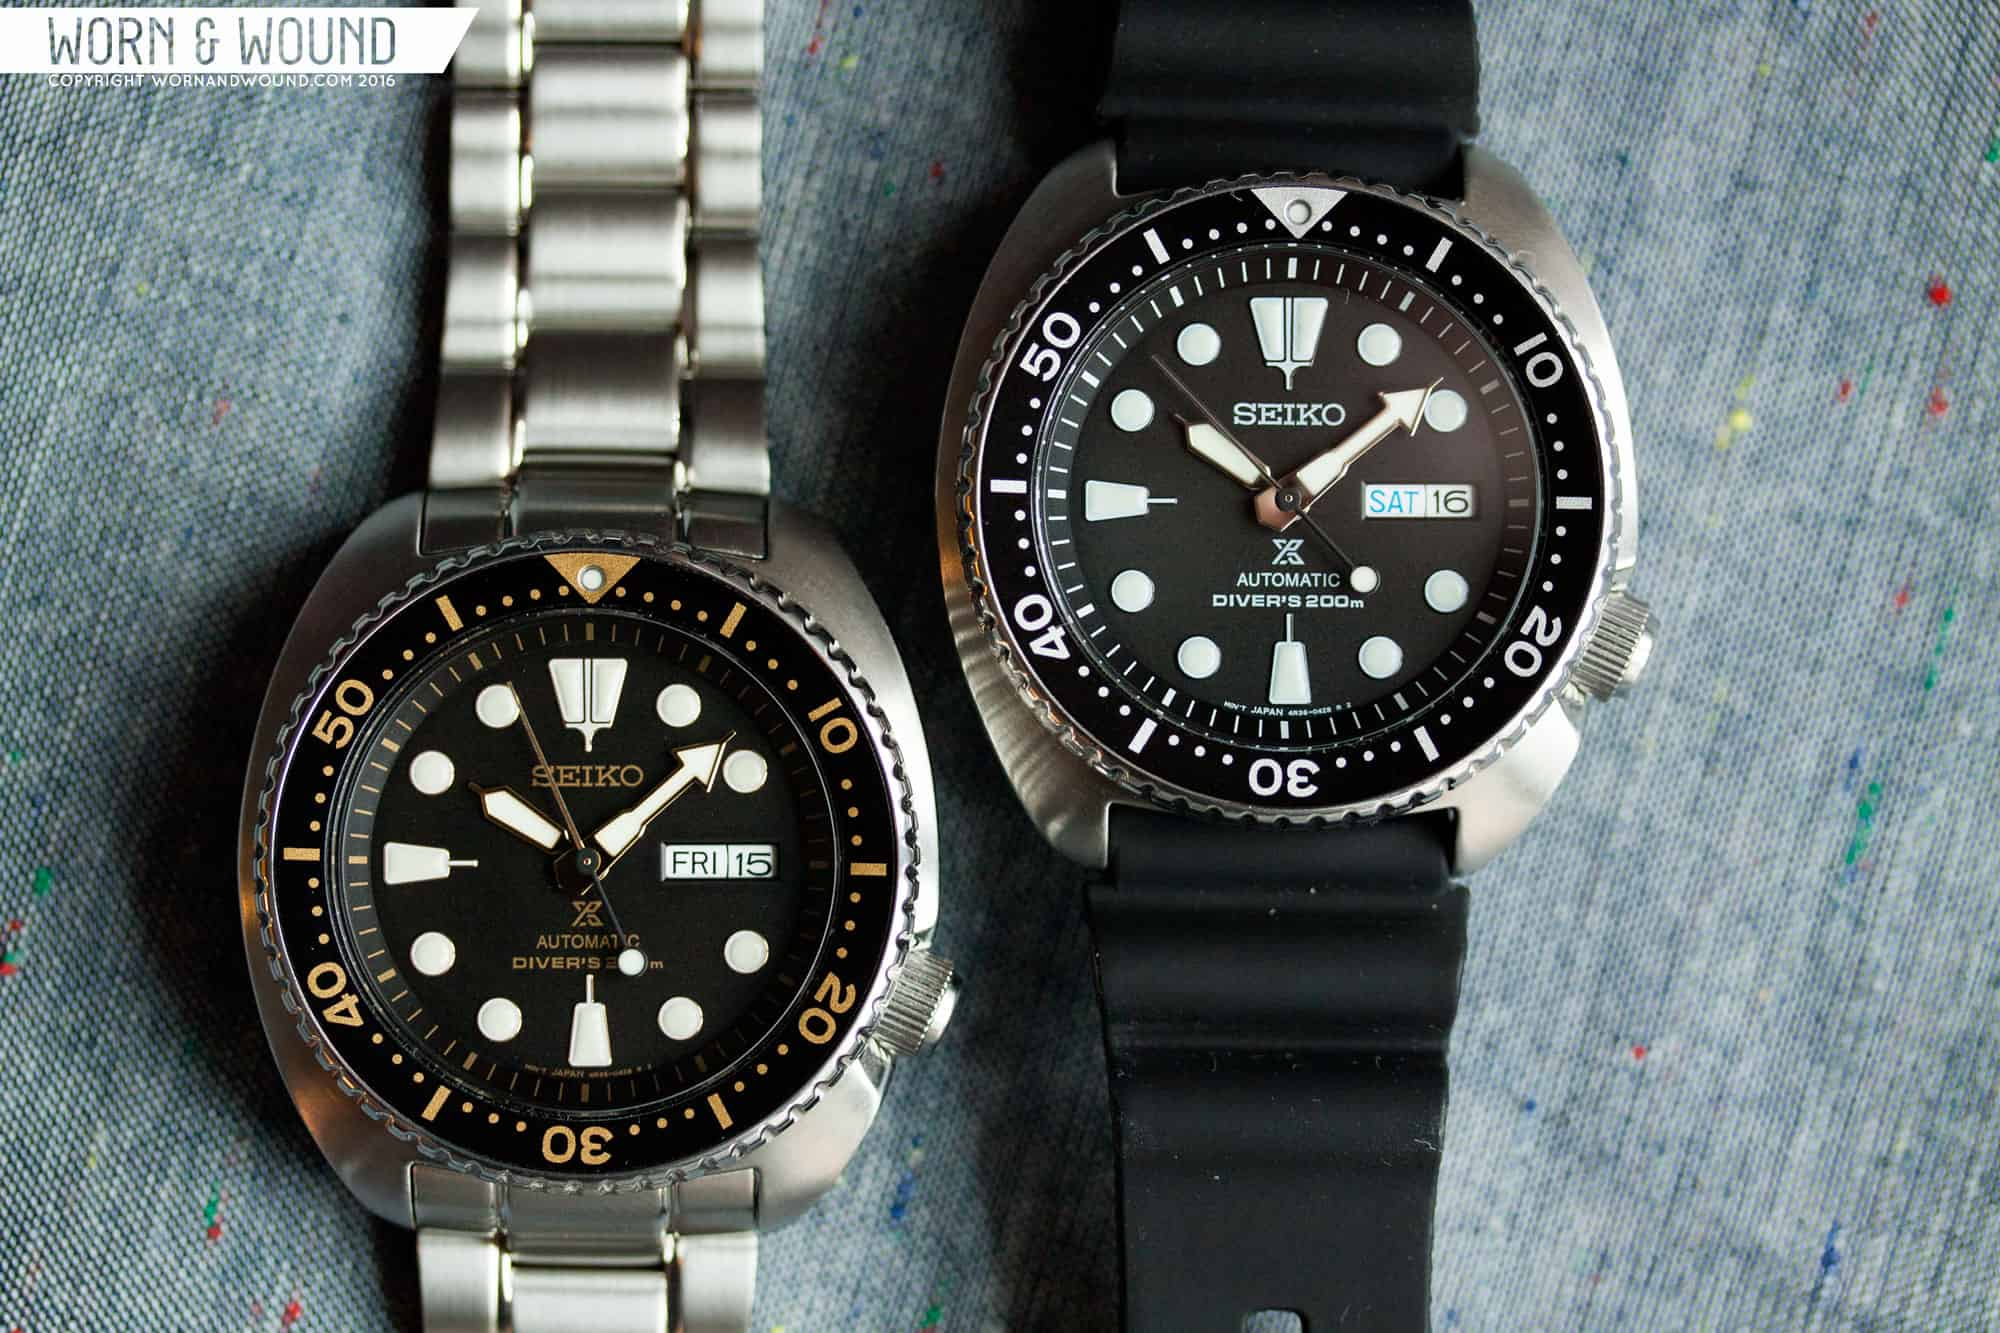 Seiko Srp Seiko Prospex Srp777 775 Review Worn Wound